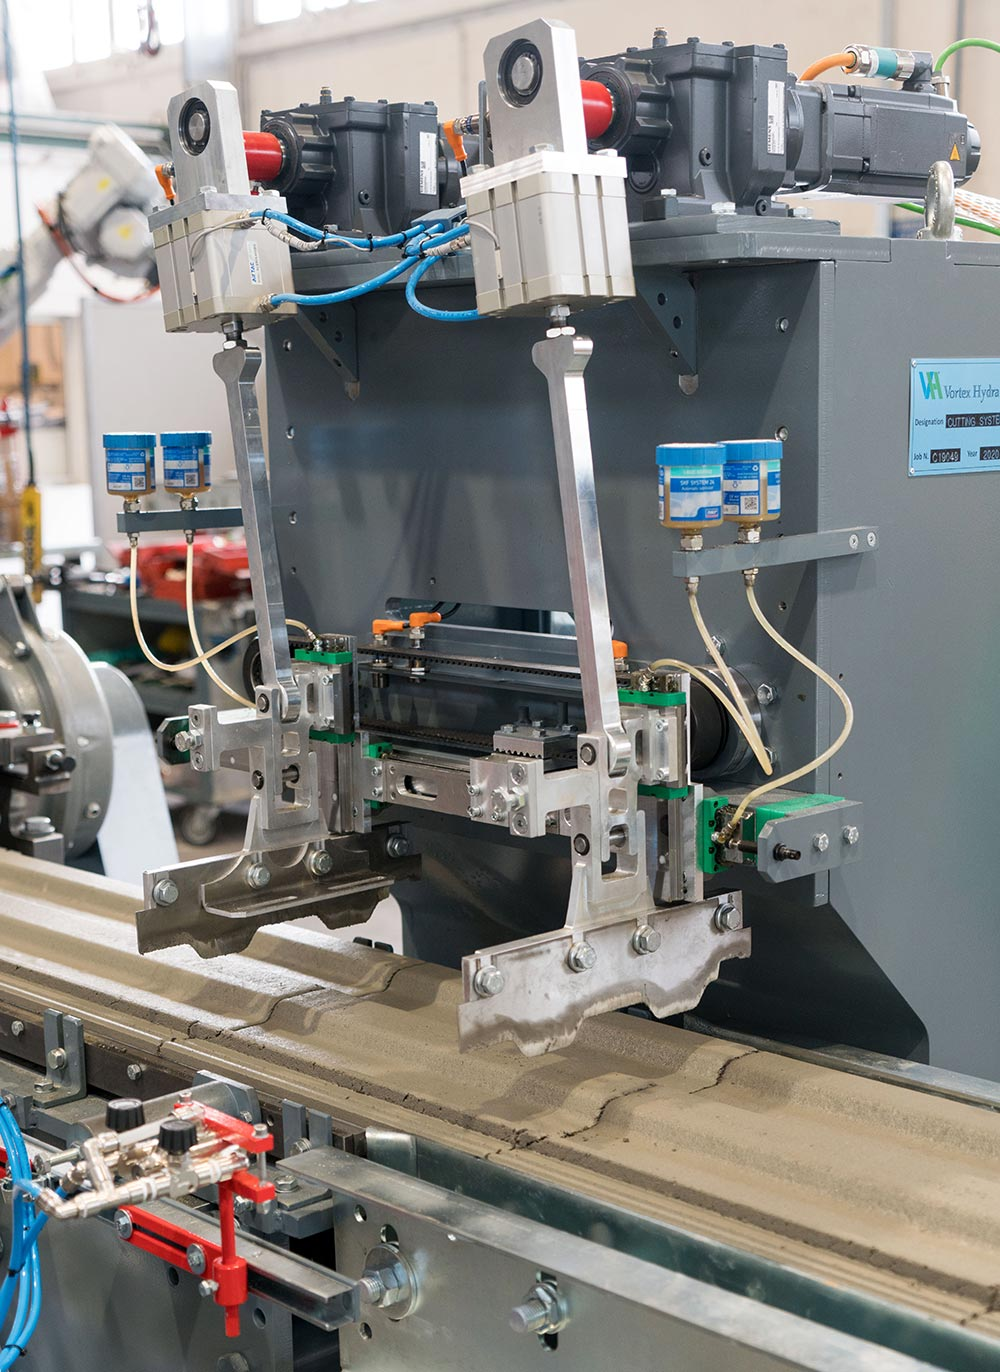 Electrically Driven Cutting System